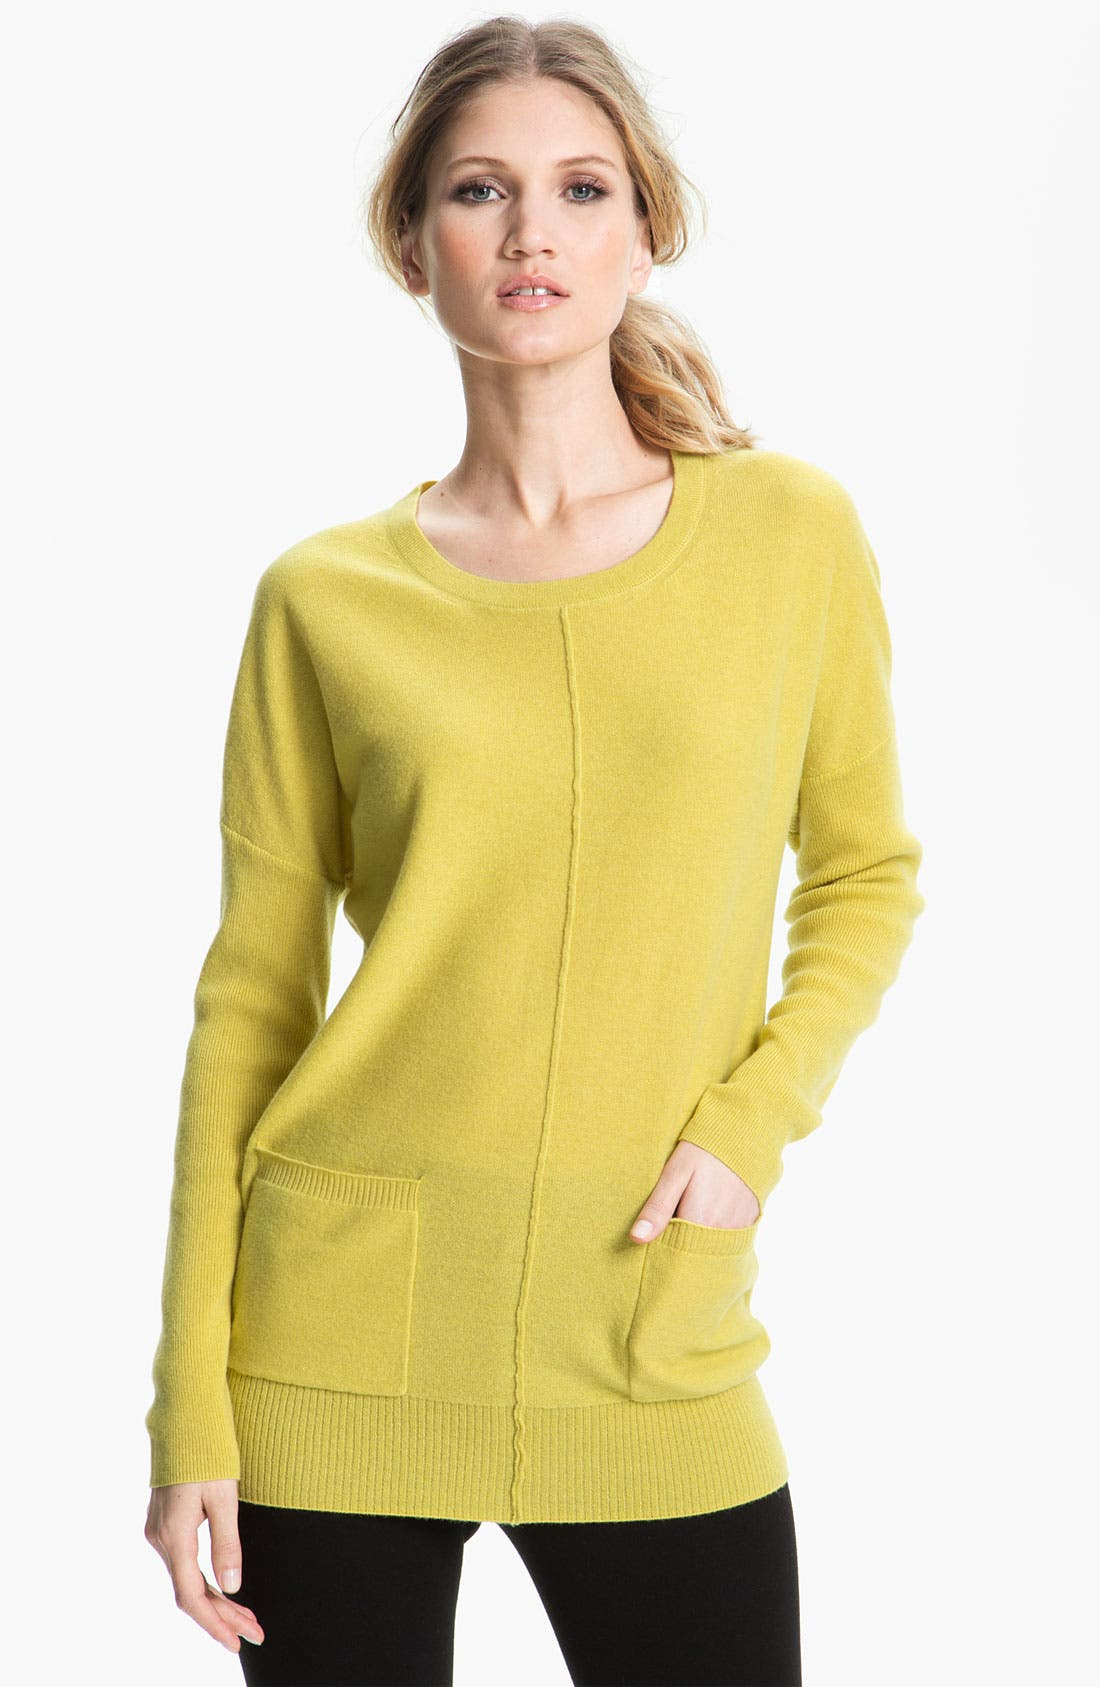 Alternate Image 1 Selected - Nordstrom Collection Cashmere Tunic Sweater